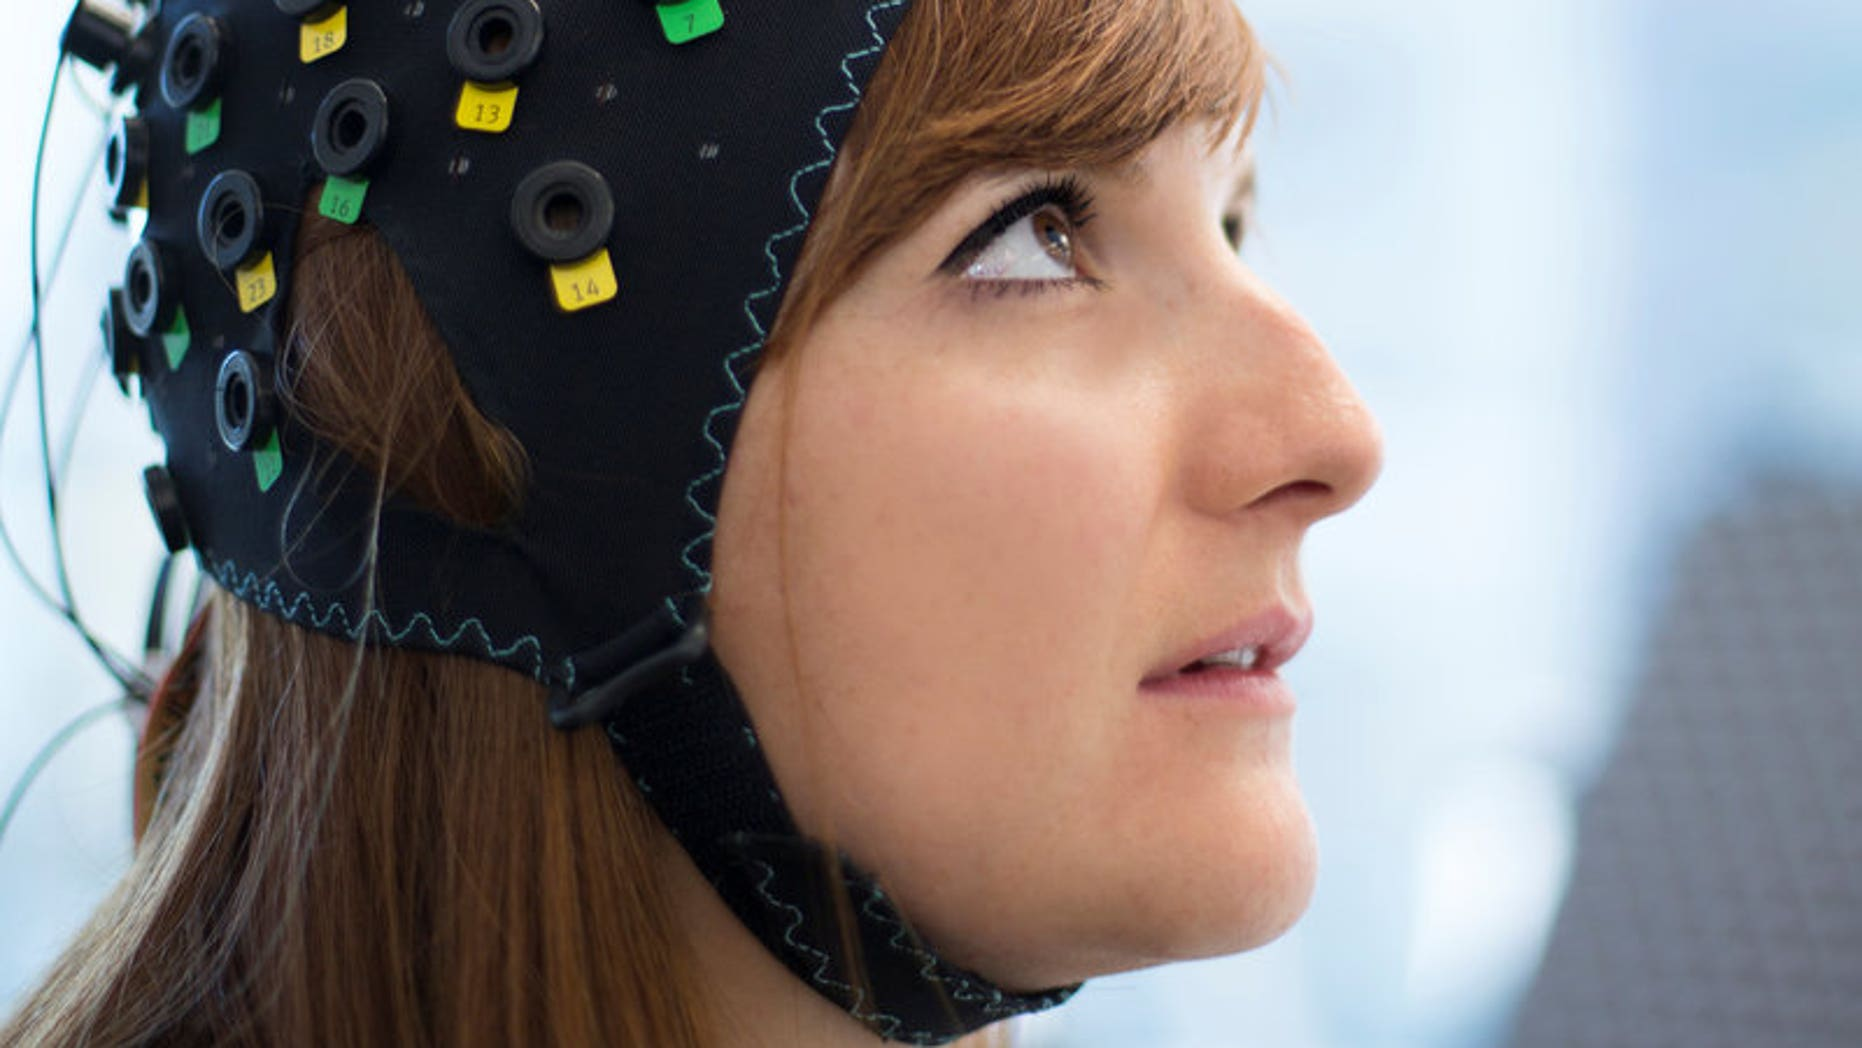 Handout photograph of the NIRS/EEG brain-computer interface system worn by a model